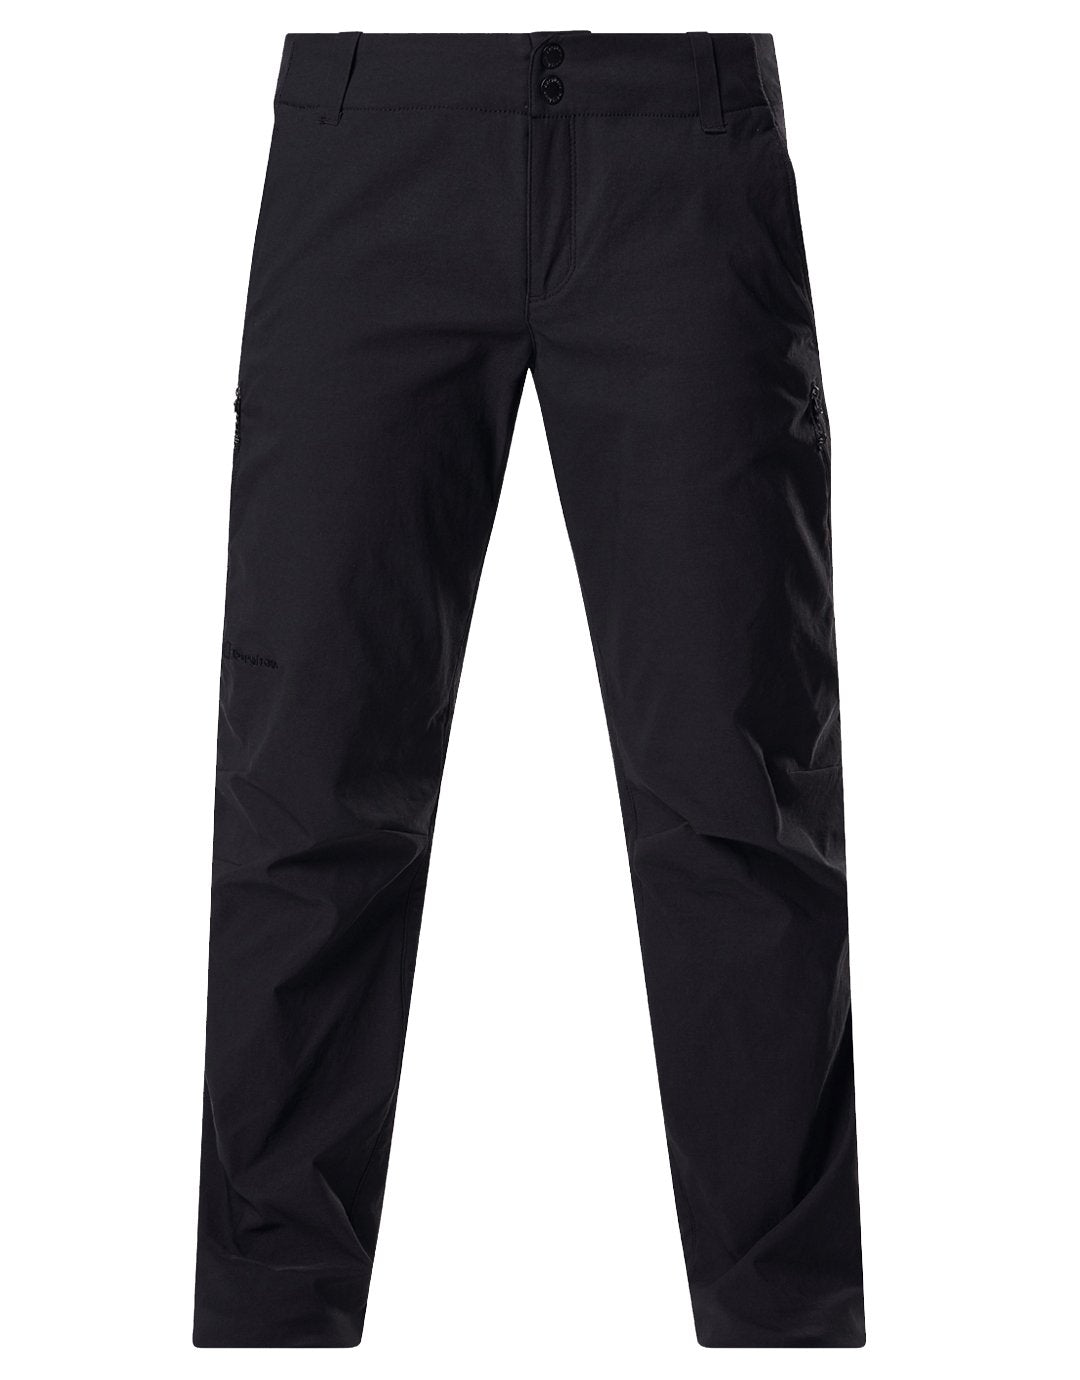 Womens Ortler Pant Regular - Black - UK Size 16 Black